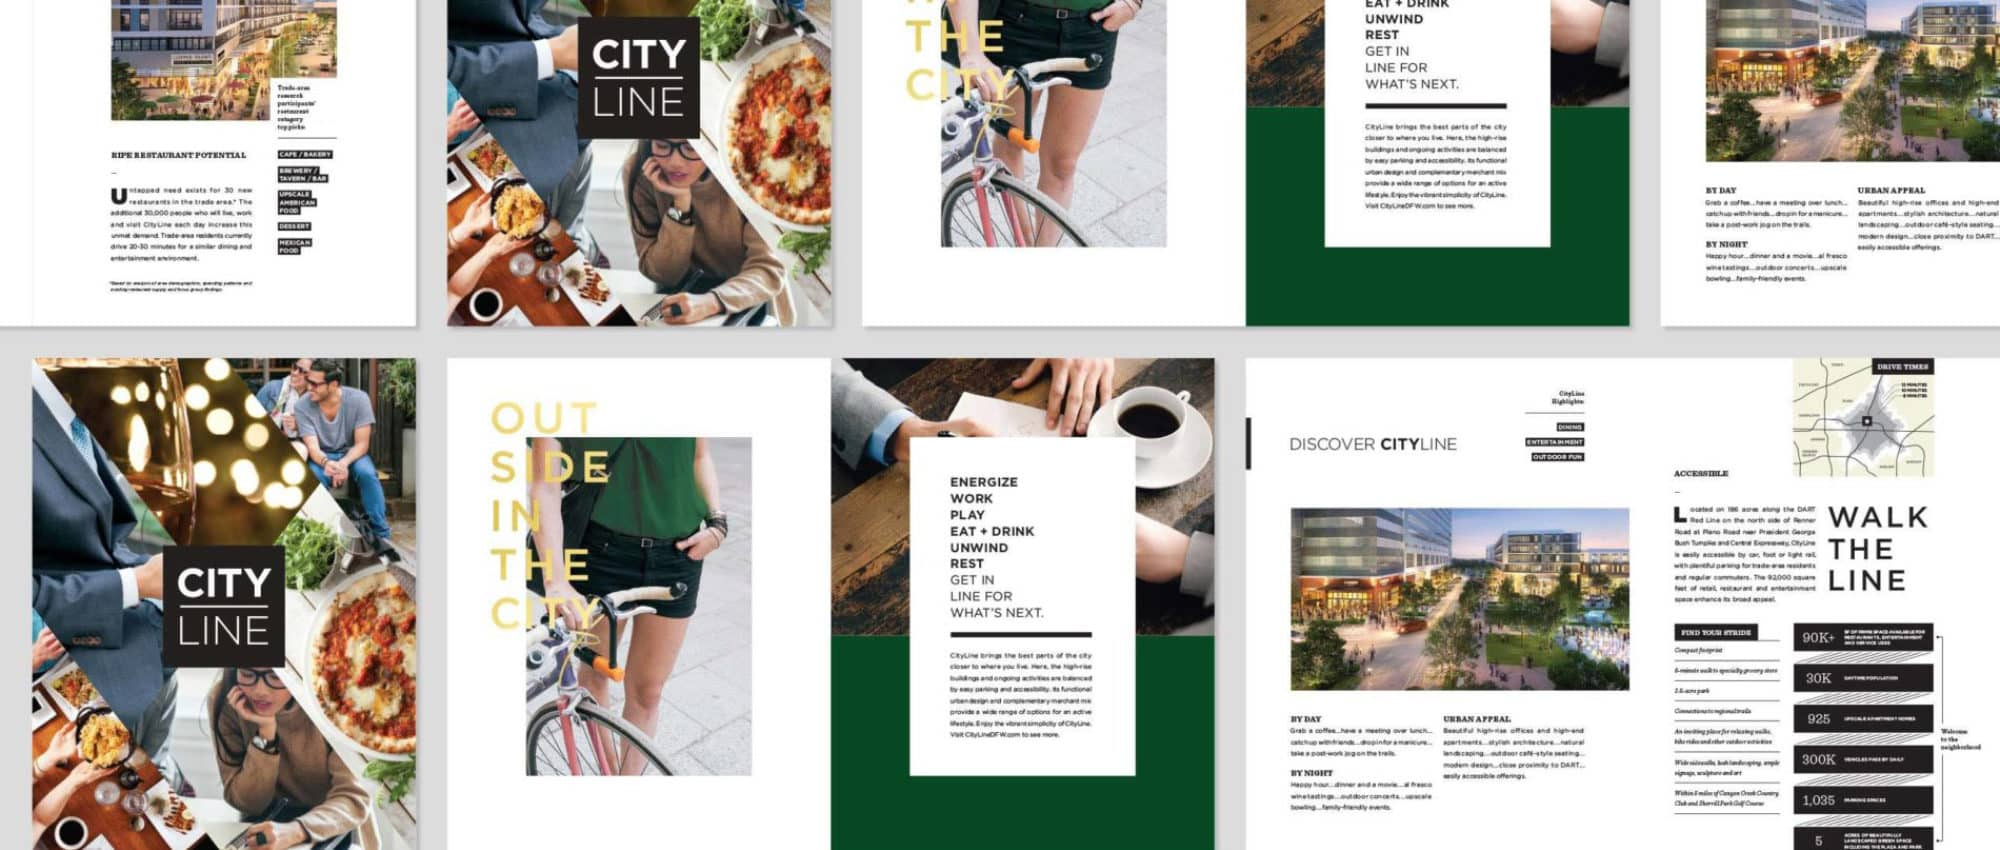 Branding Agencies for Commercial Real Estate